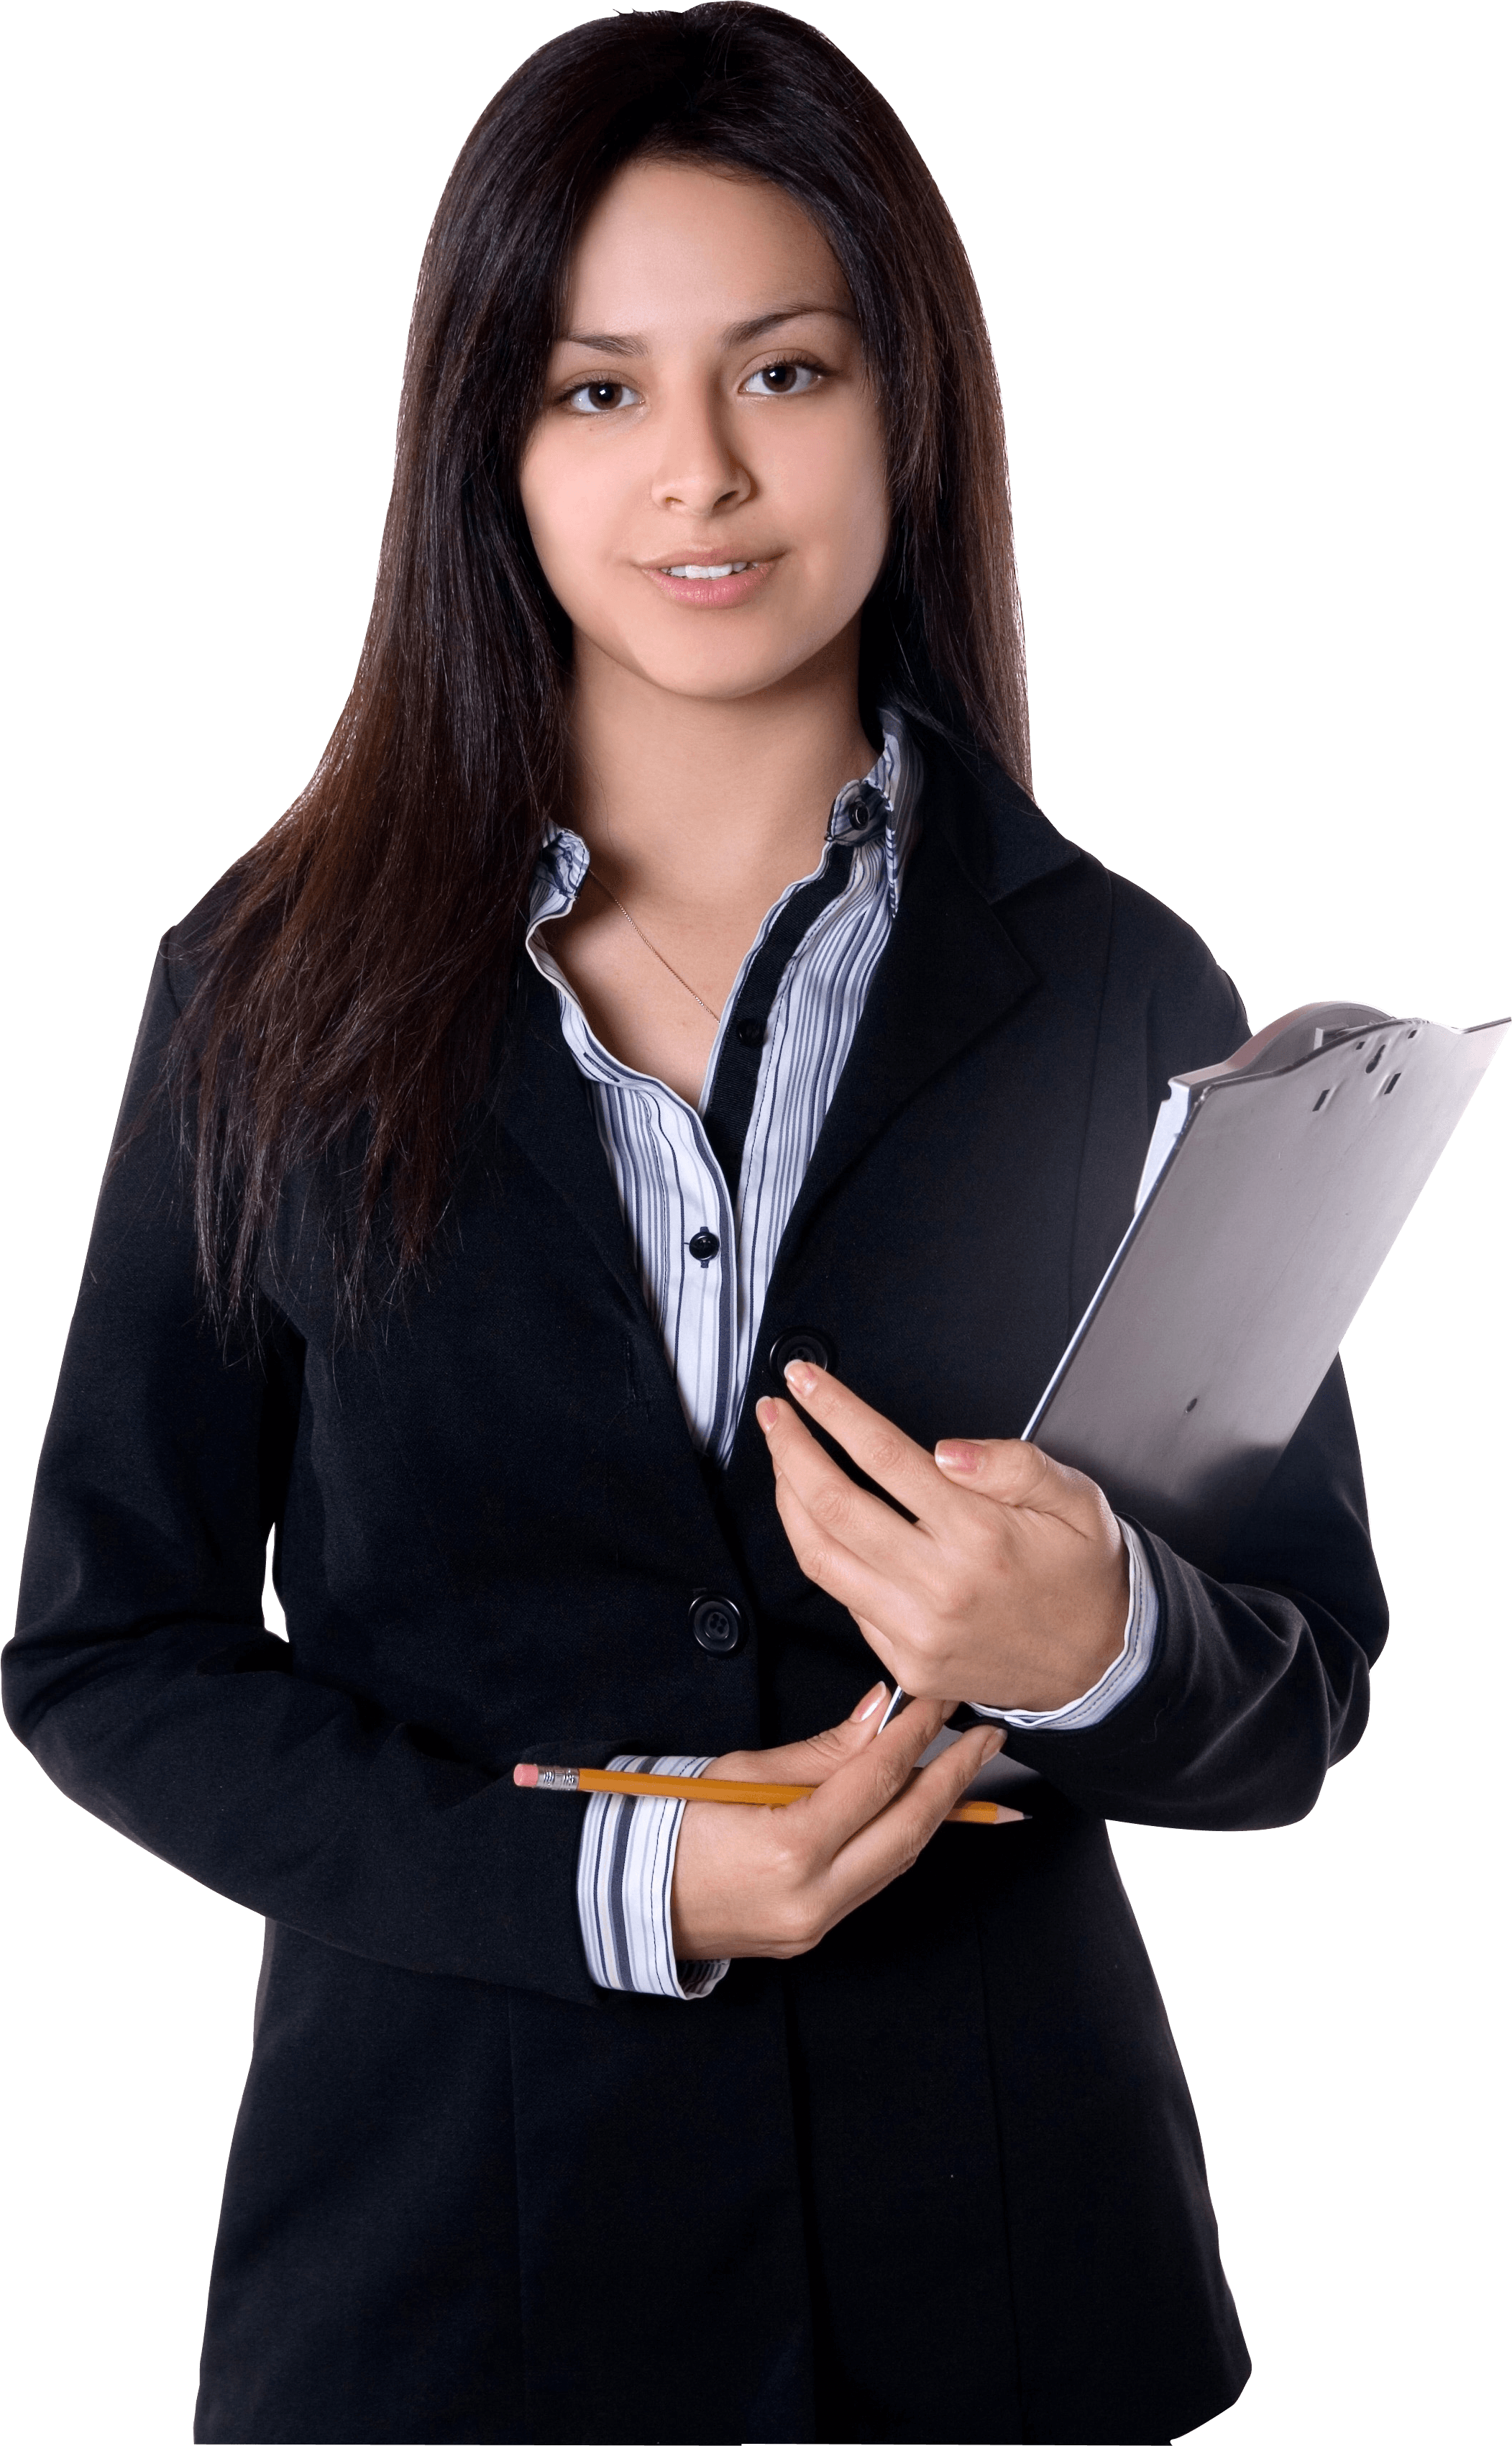 Business Woman Girl Png Image PNG Image